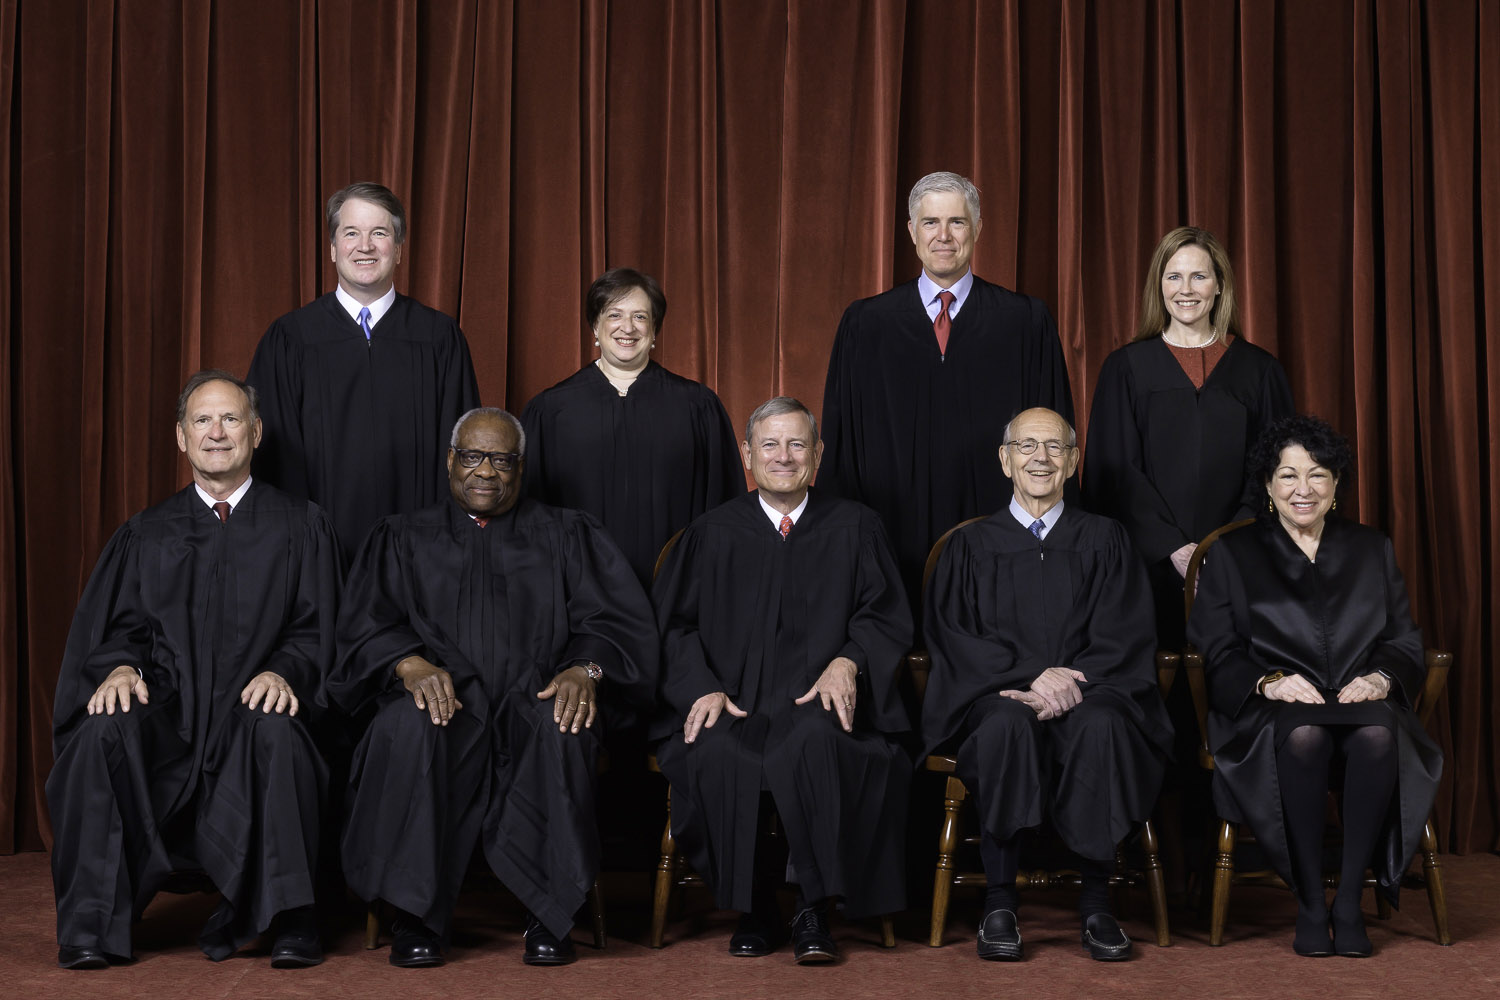 The Supreme Court as composed October 27, 2020 to present